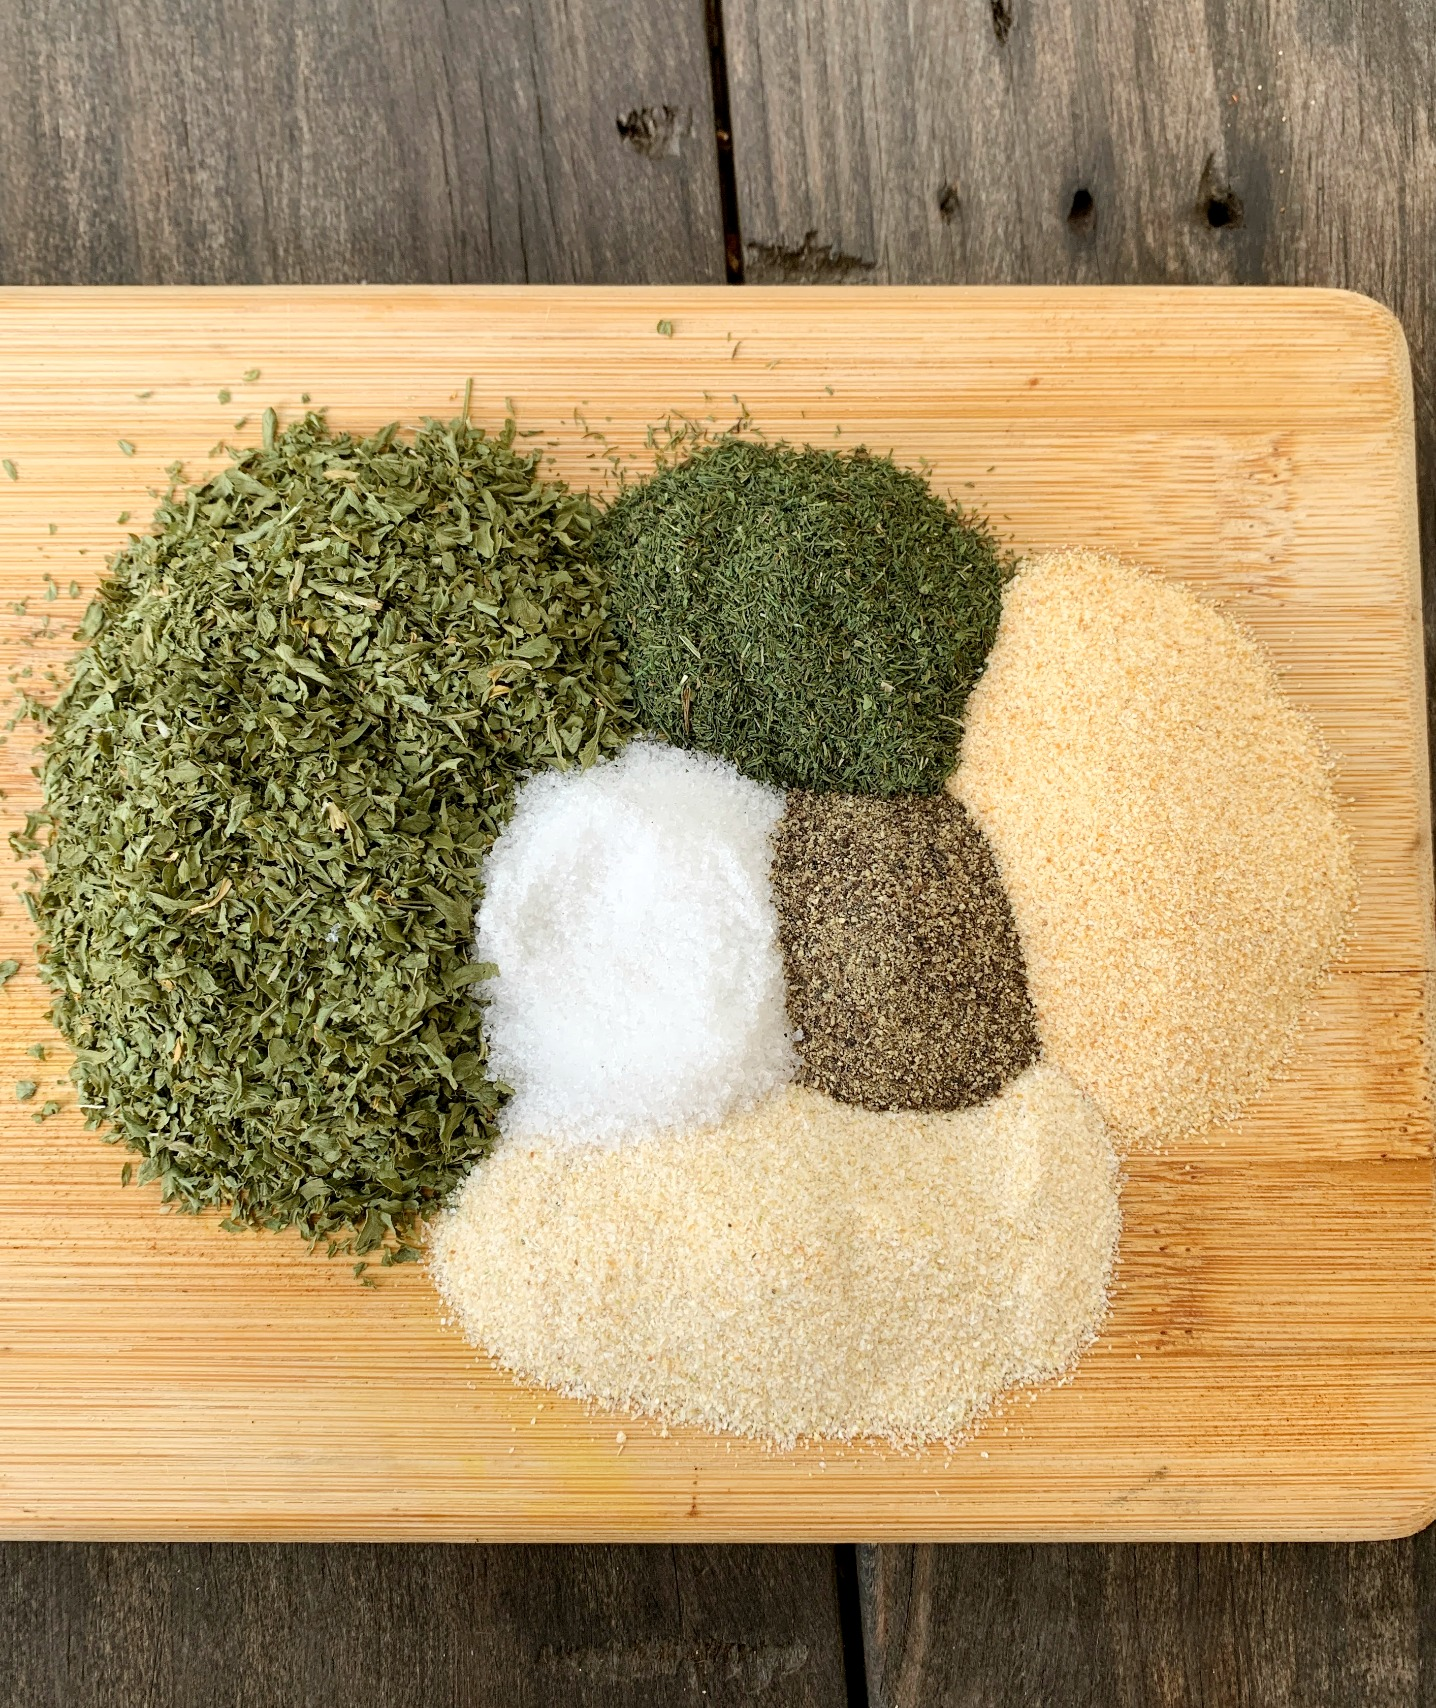 seasonings in different piles for homemade ranch seasoning